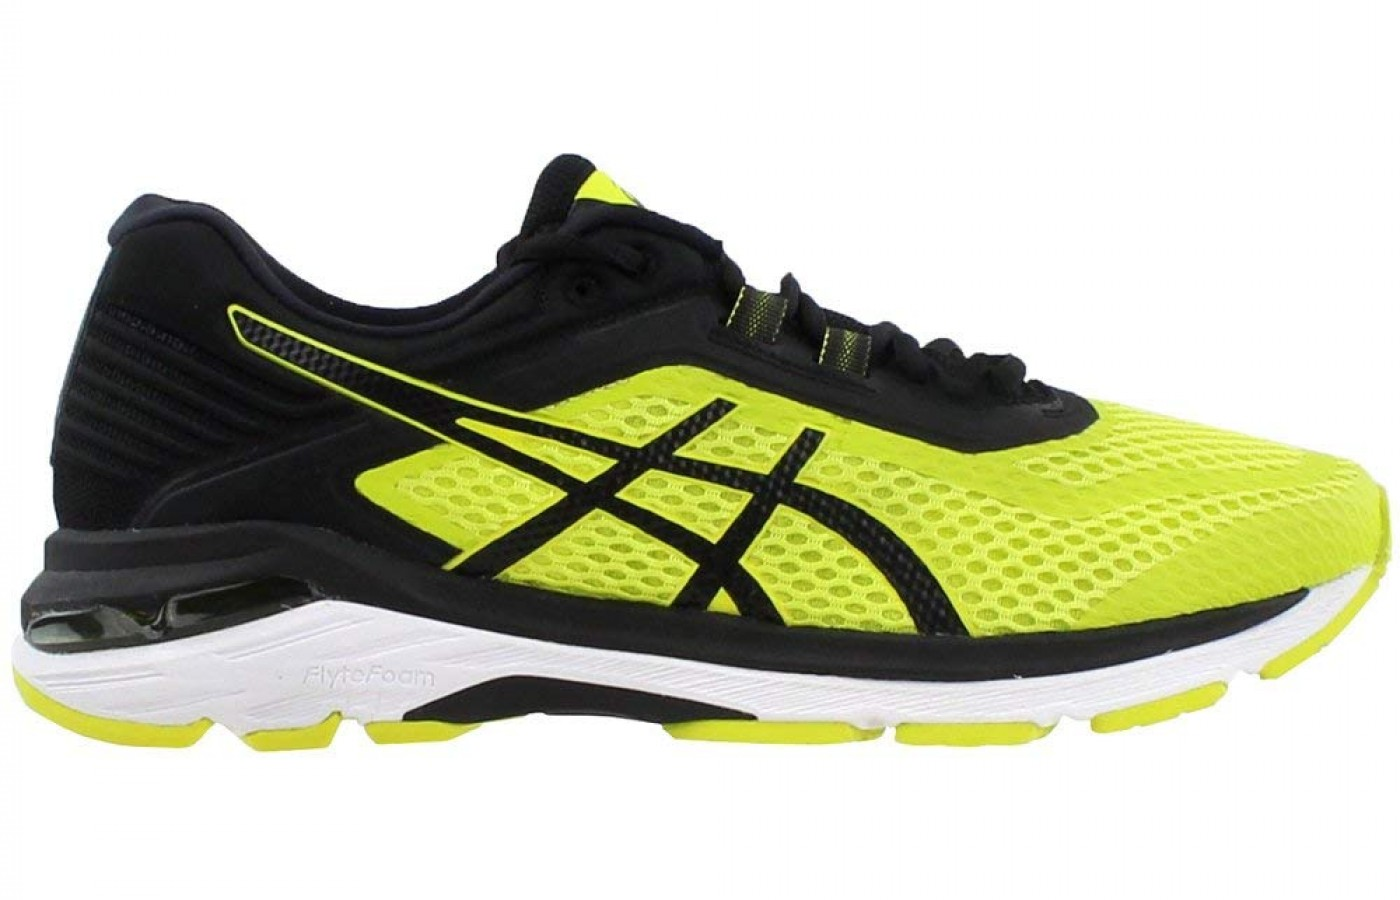 Asics GT-2000 6 Outsole